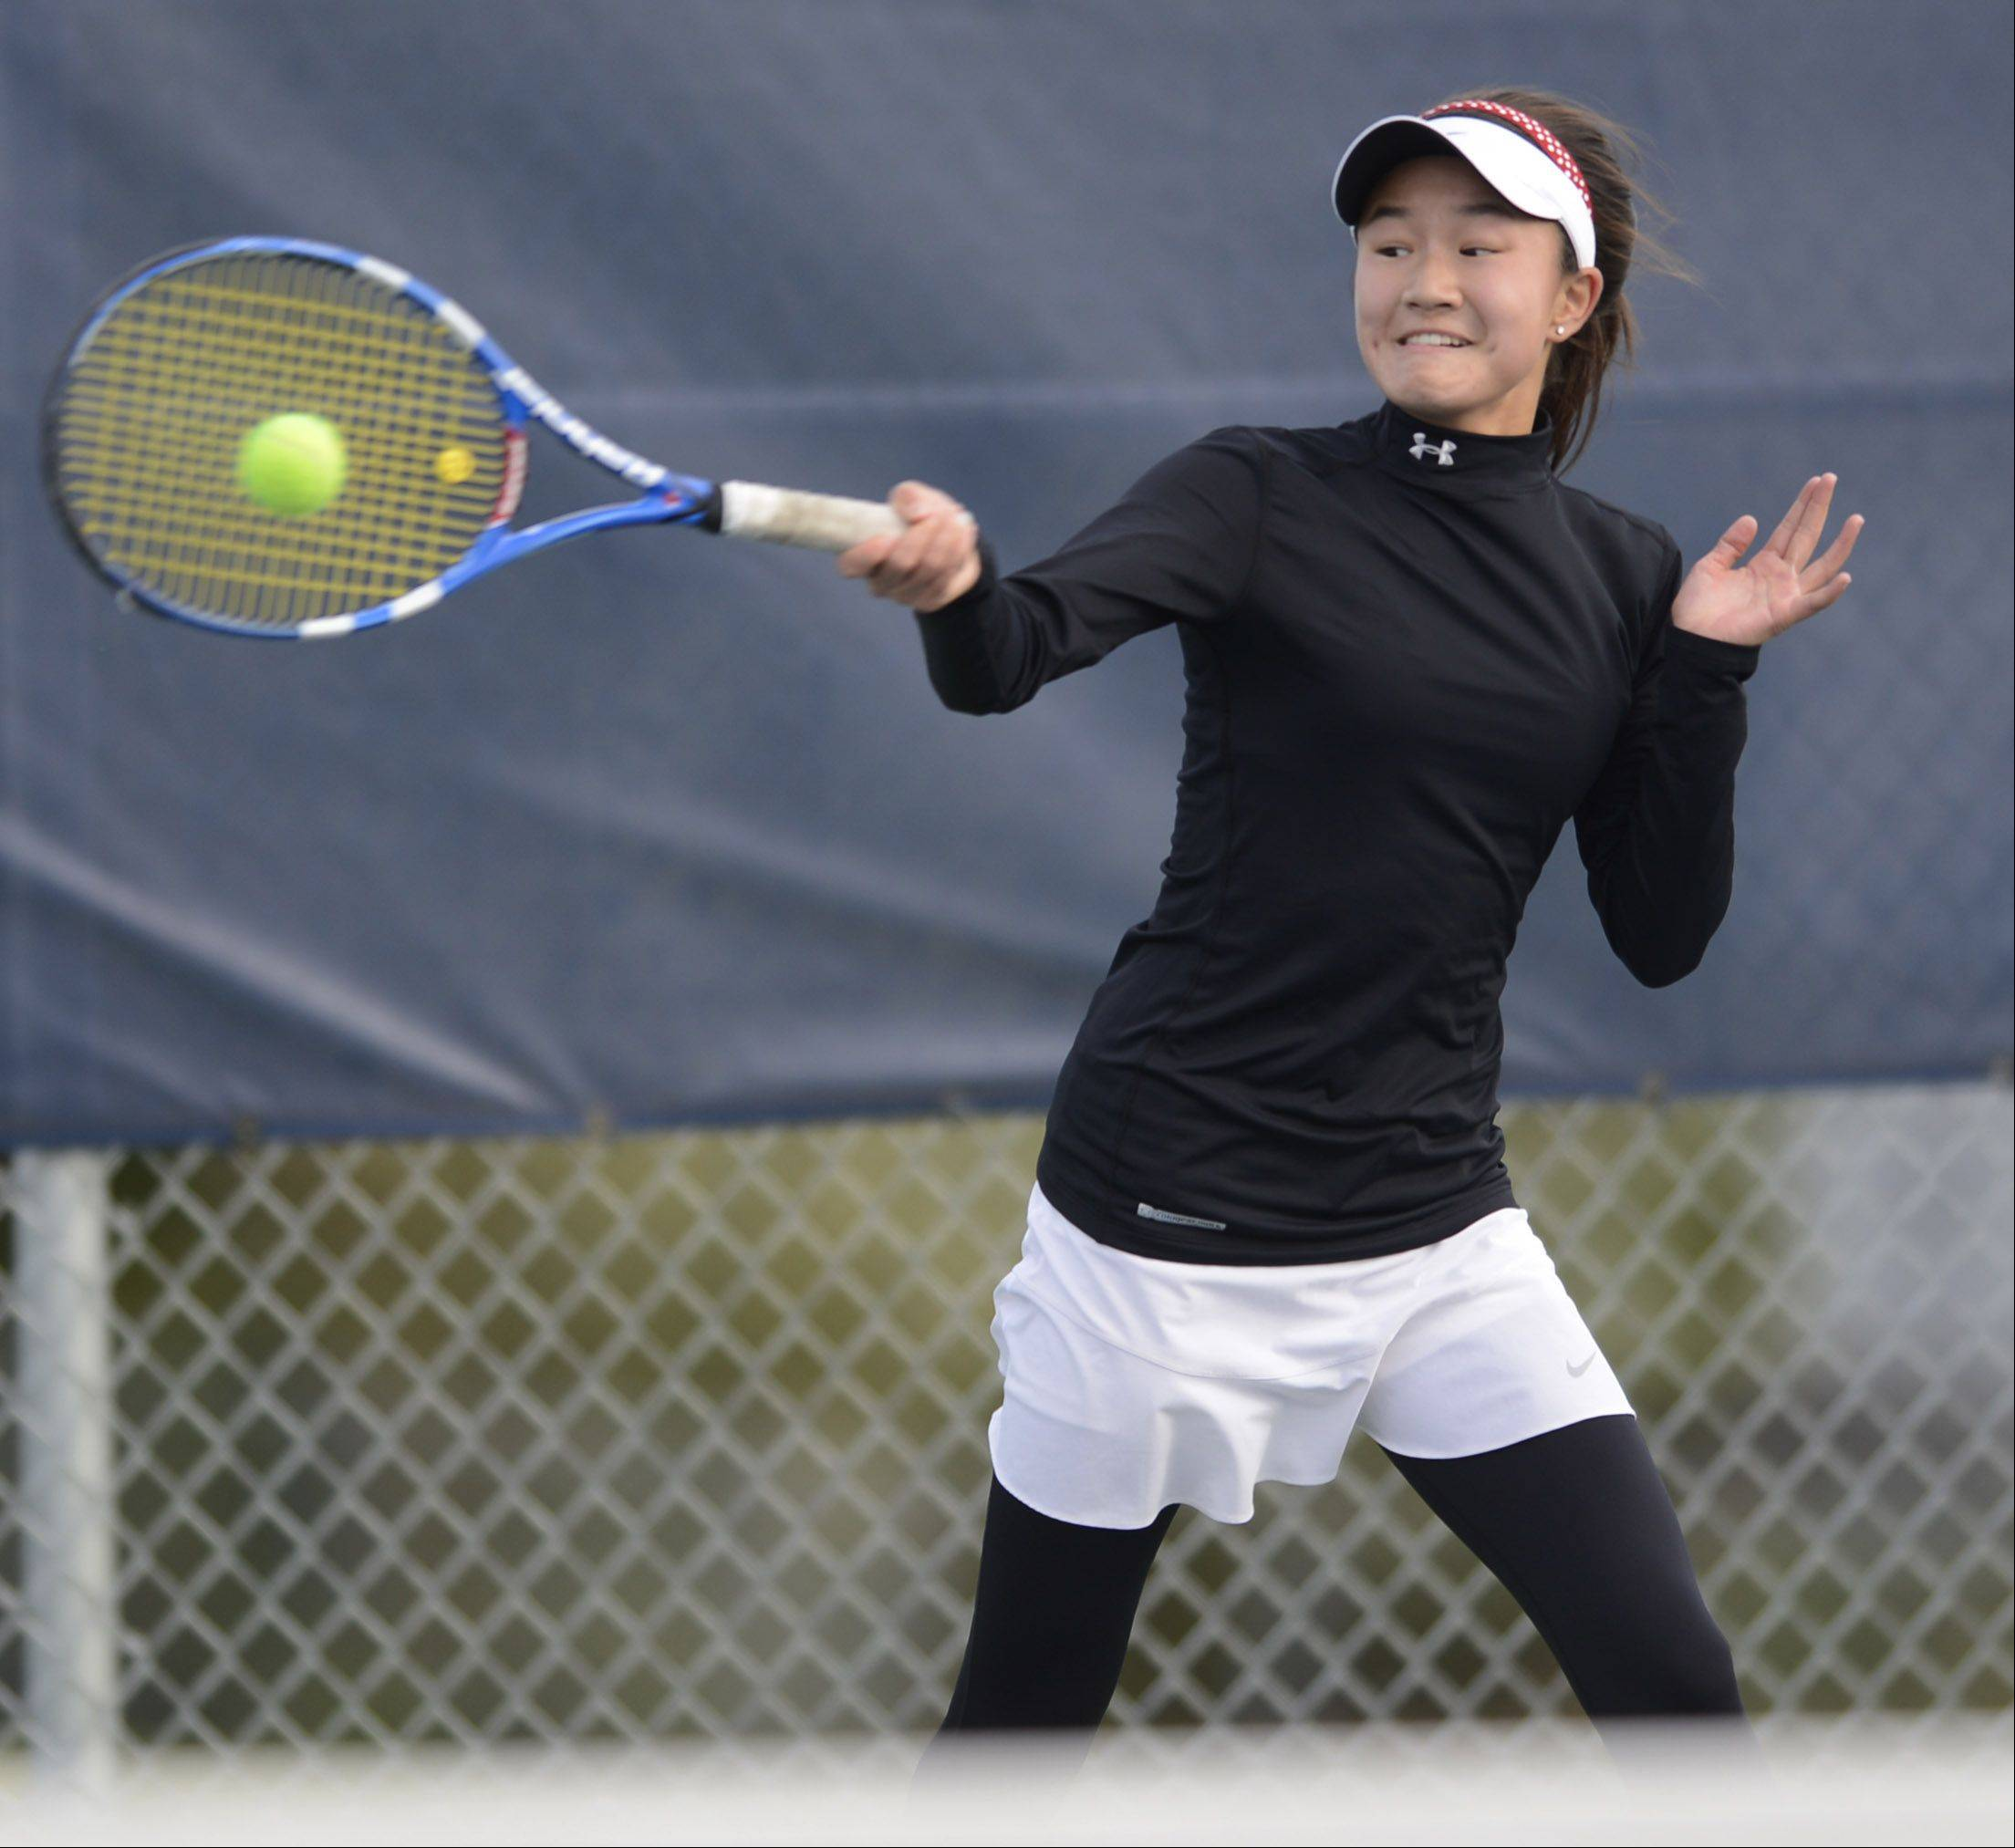 Naperville Central's Tiffany Chen returns the ball during the girls state tennis semifinals at Buffalo Grove High School Saturday.